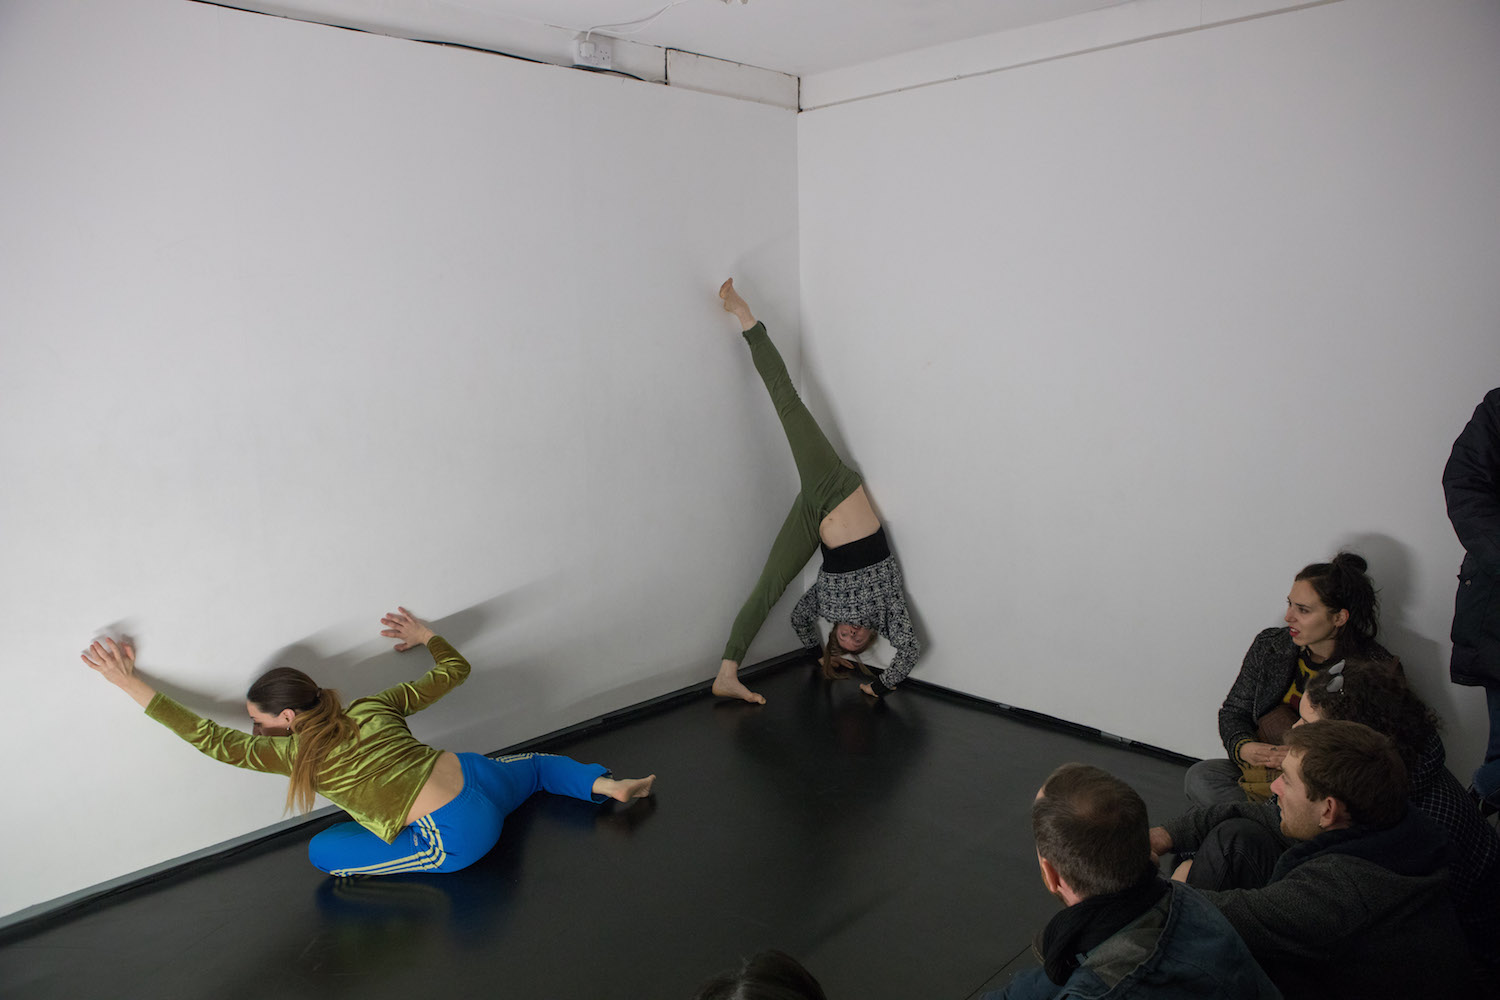 Nicole Bachmann, Personare Part II, 2018. Performance.  00:17:00 - 00:25:00. Performed by Patricia Langa, Anna Procter and Sonya Frances Cullingford. Dance choreography by Patricia Langa. Tenderpixel, London, UK.